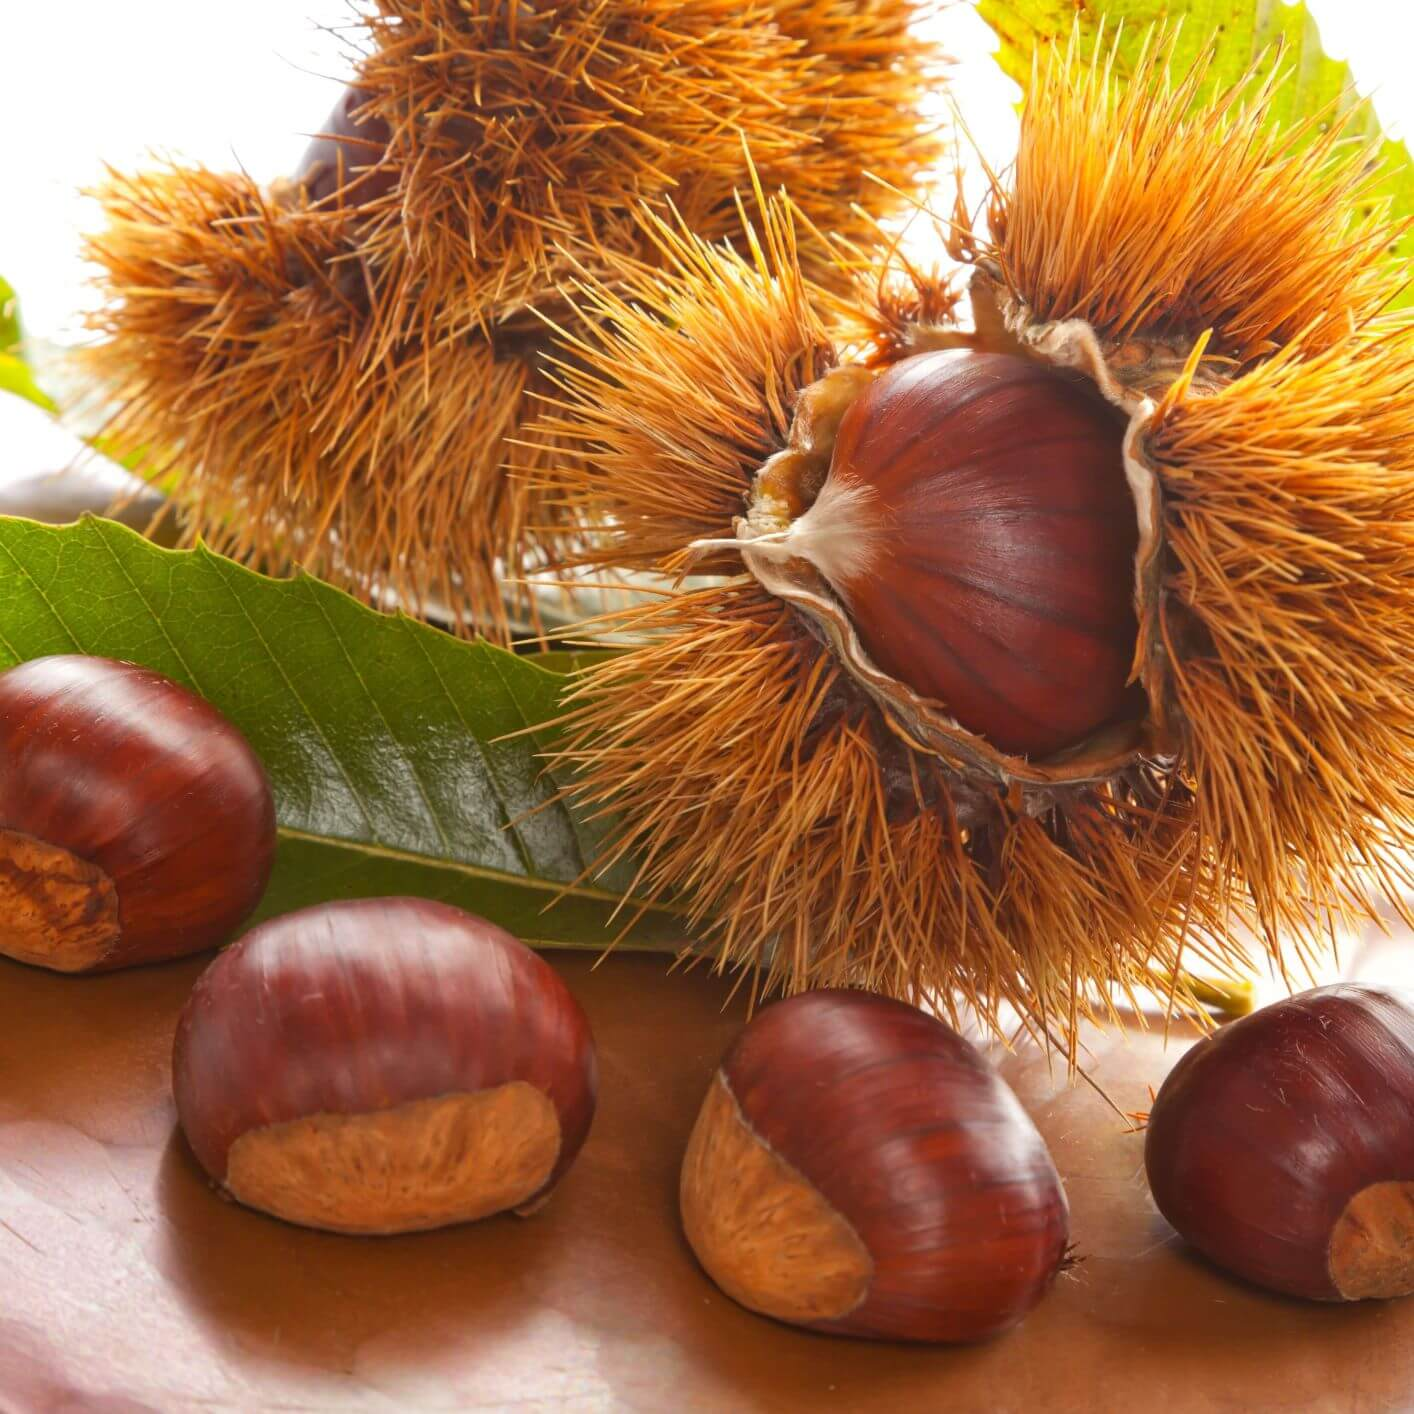 Japanese Chestnut or Kuri